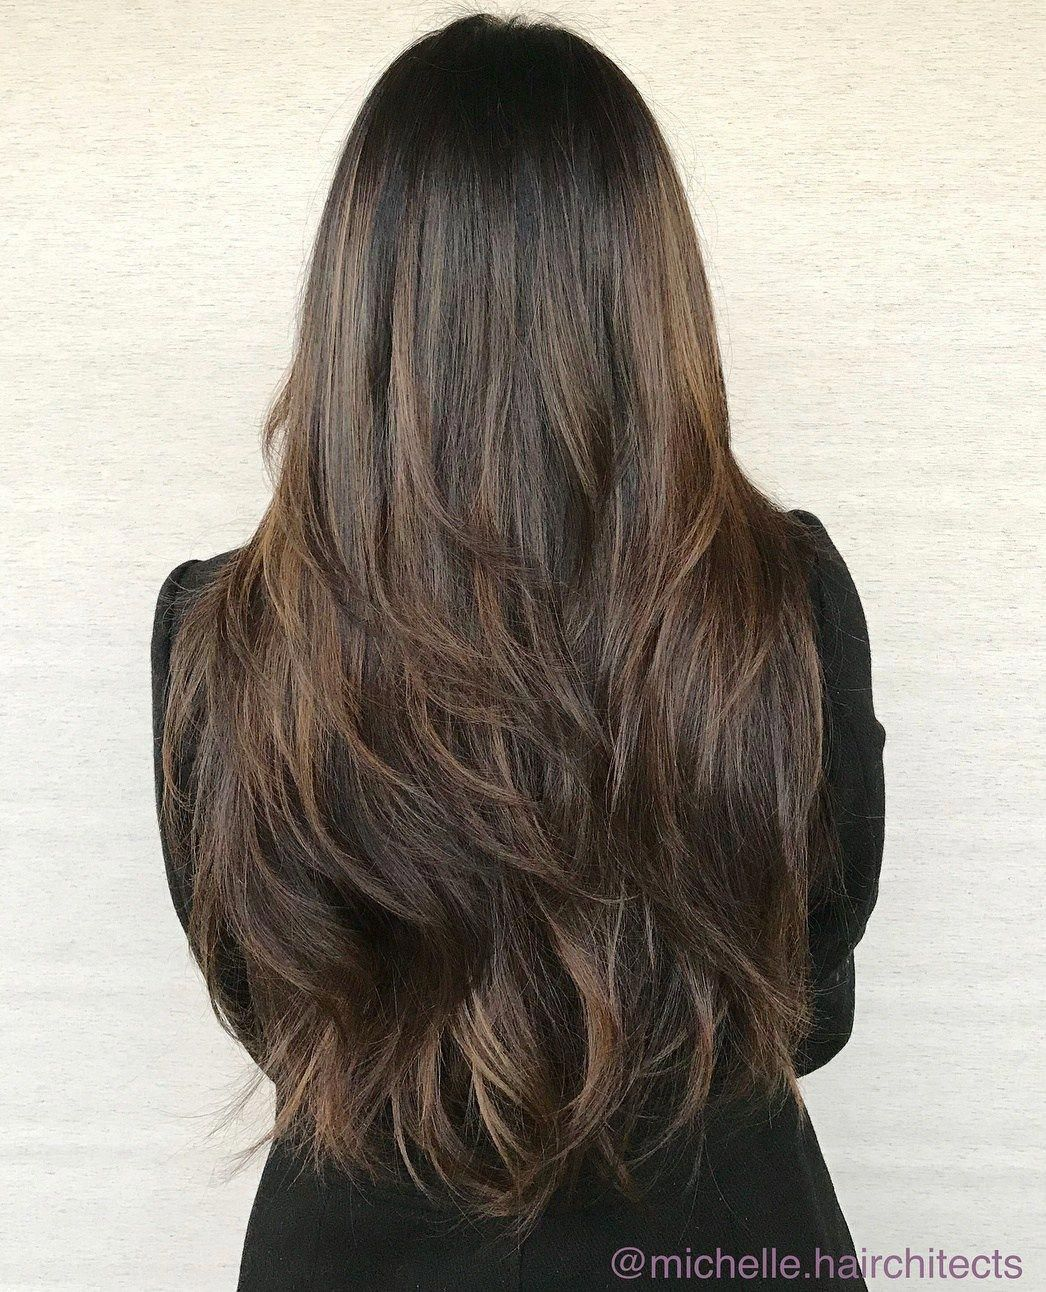 Waist Length Brunette Hair With Textured Layers Haircutsforlonghair Long Brunette Hair Long Thin Hair Long Hair Styles